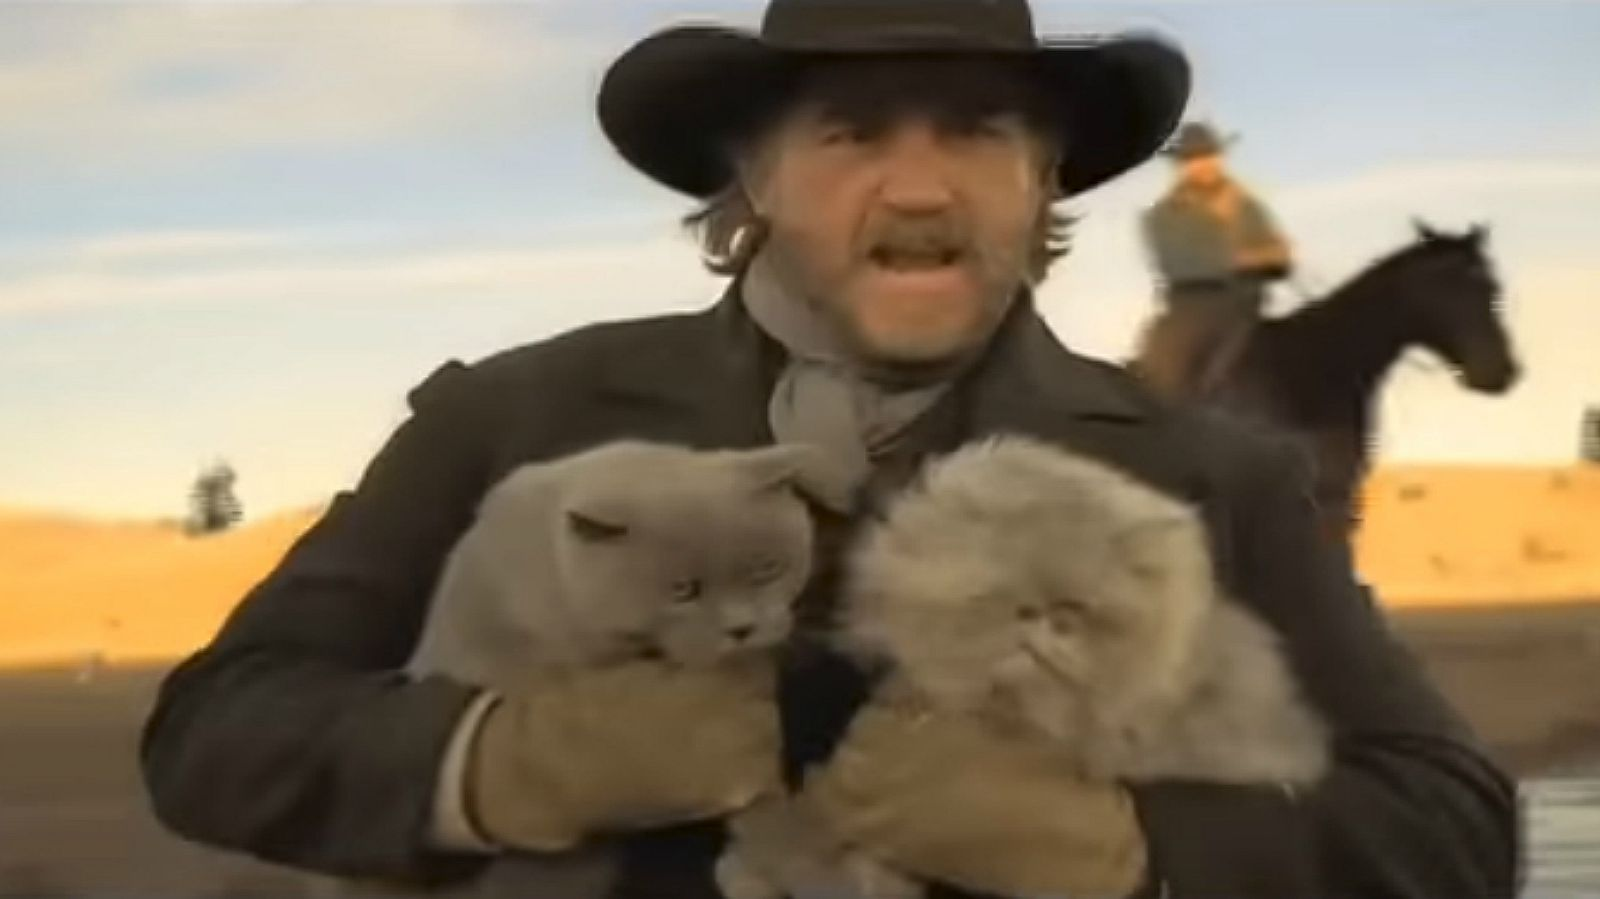 Cowboys Herding Cats Commercial Is Still One of My All-Time Favorites.